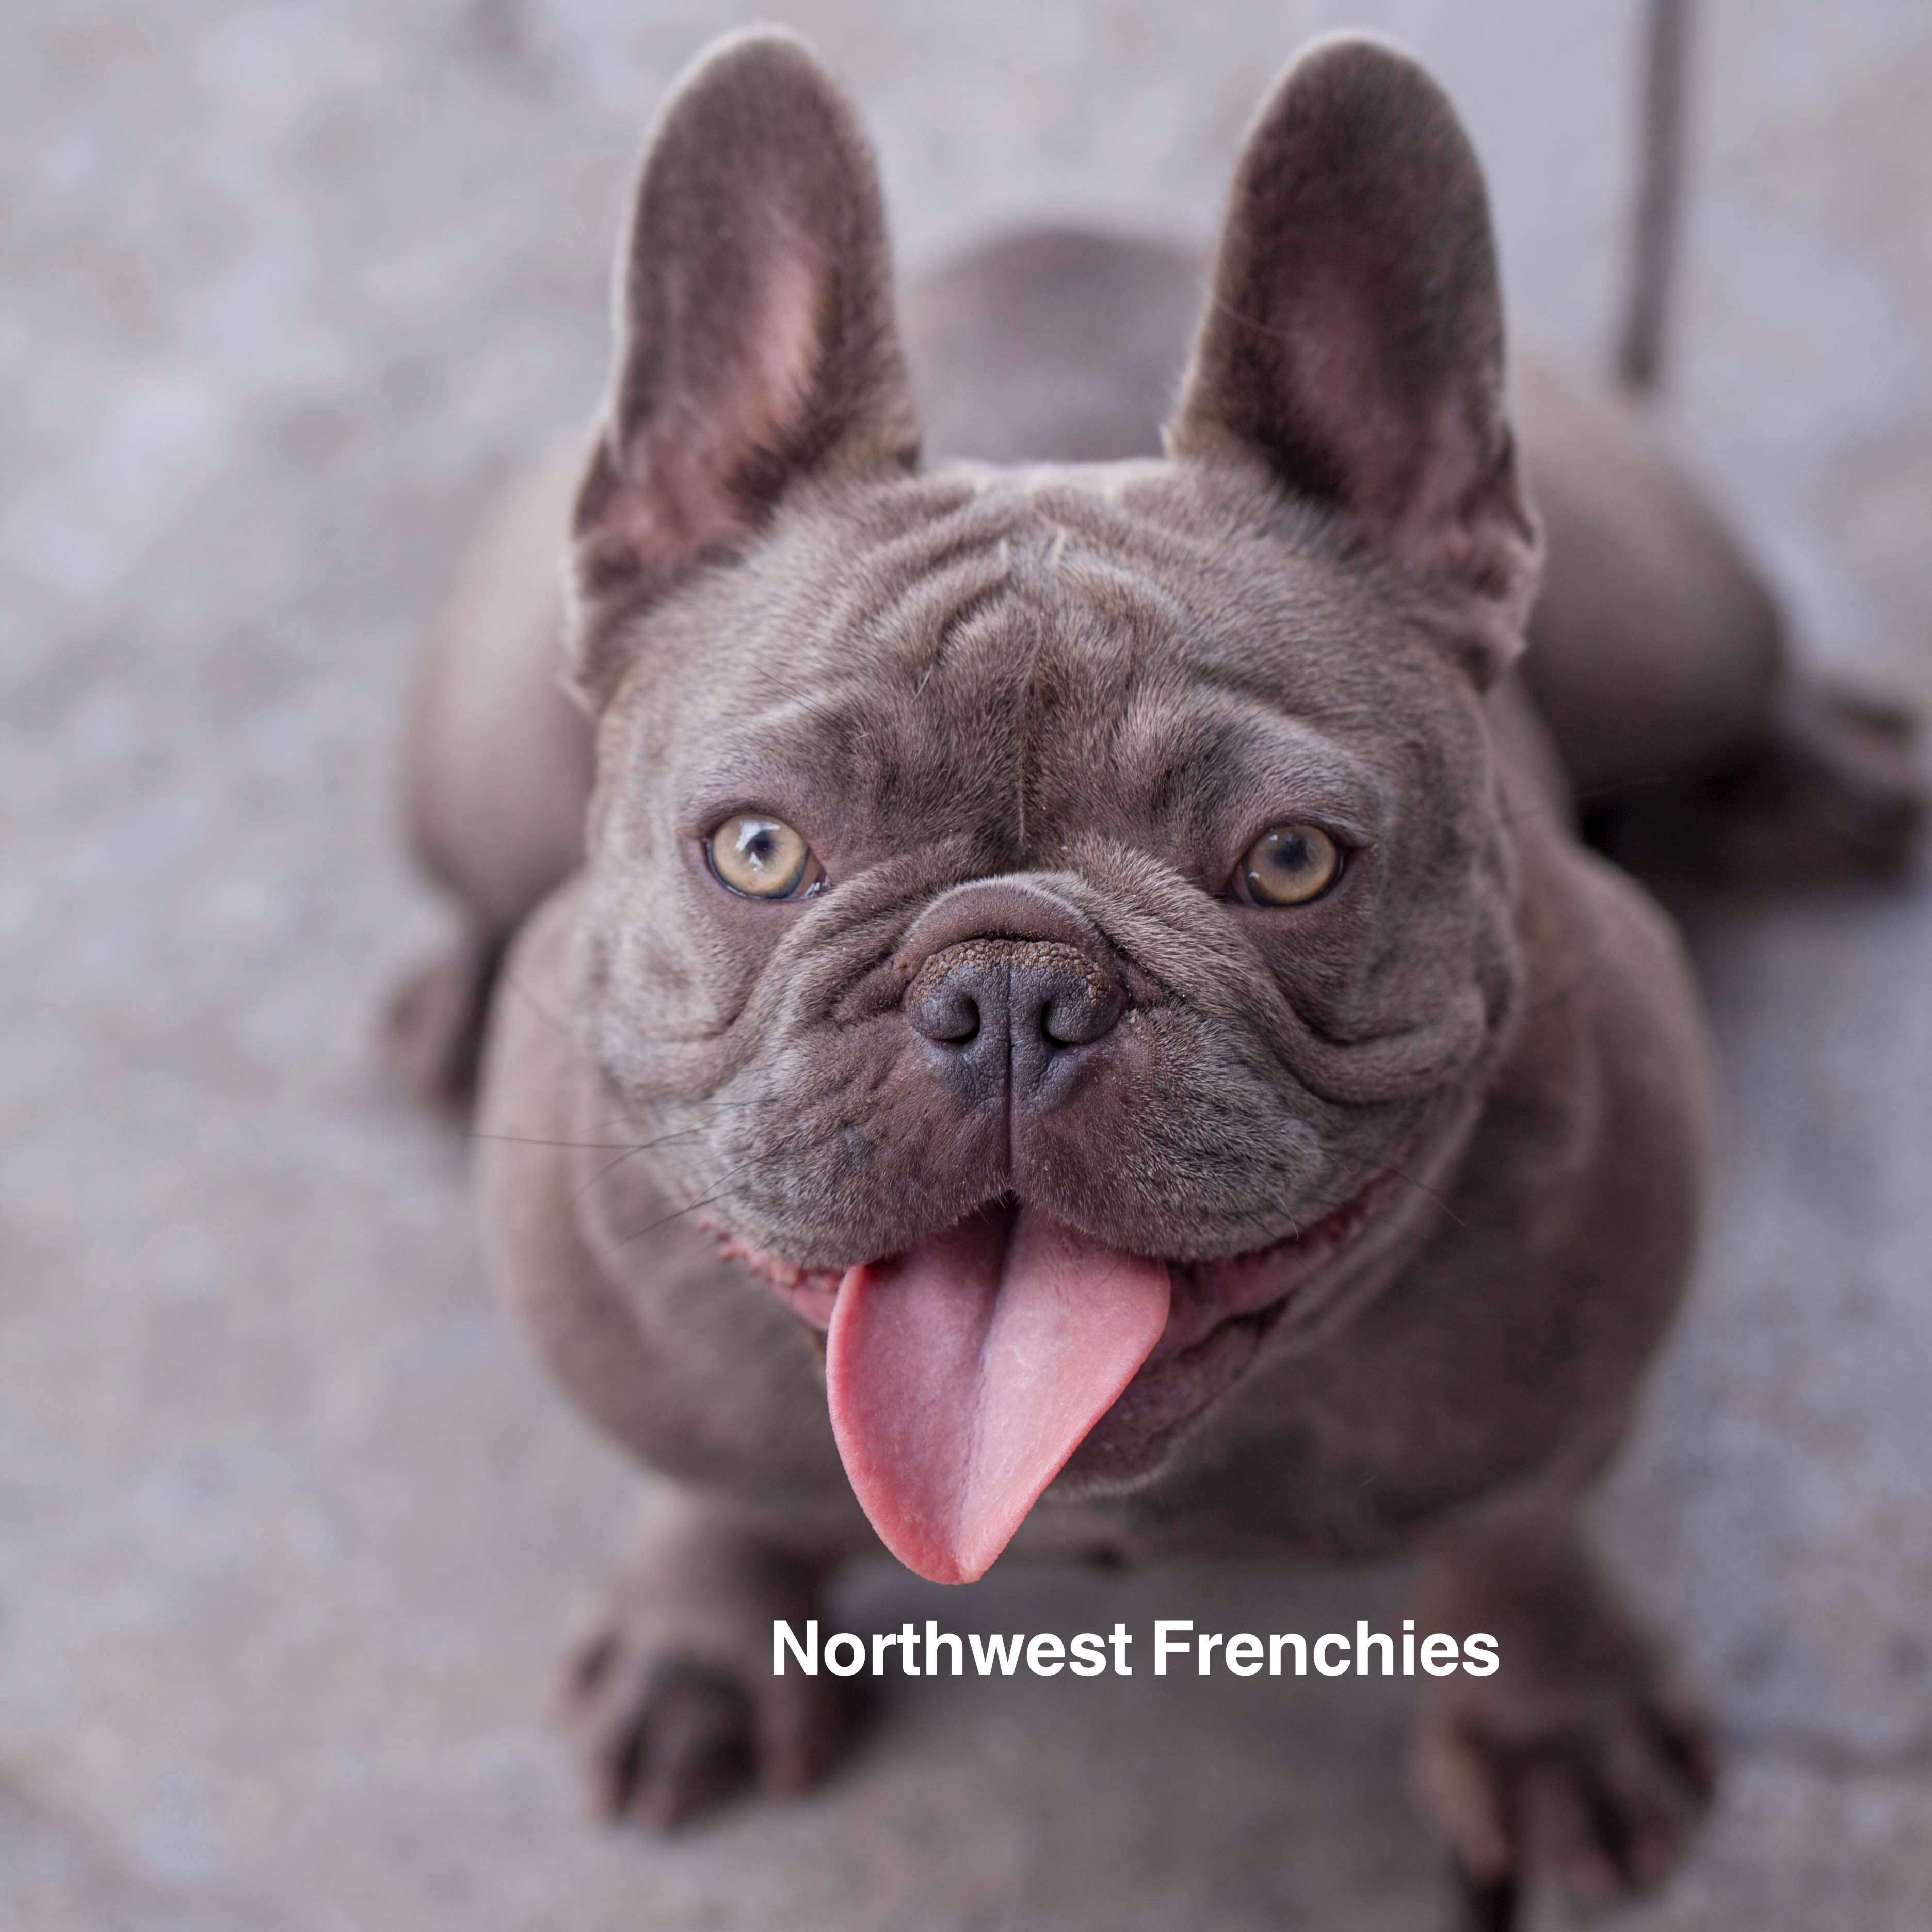 A Northwest Frenchies Baby Comes Home Fully Vet Checked Health